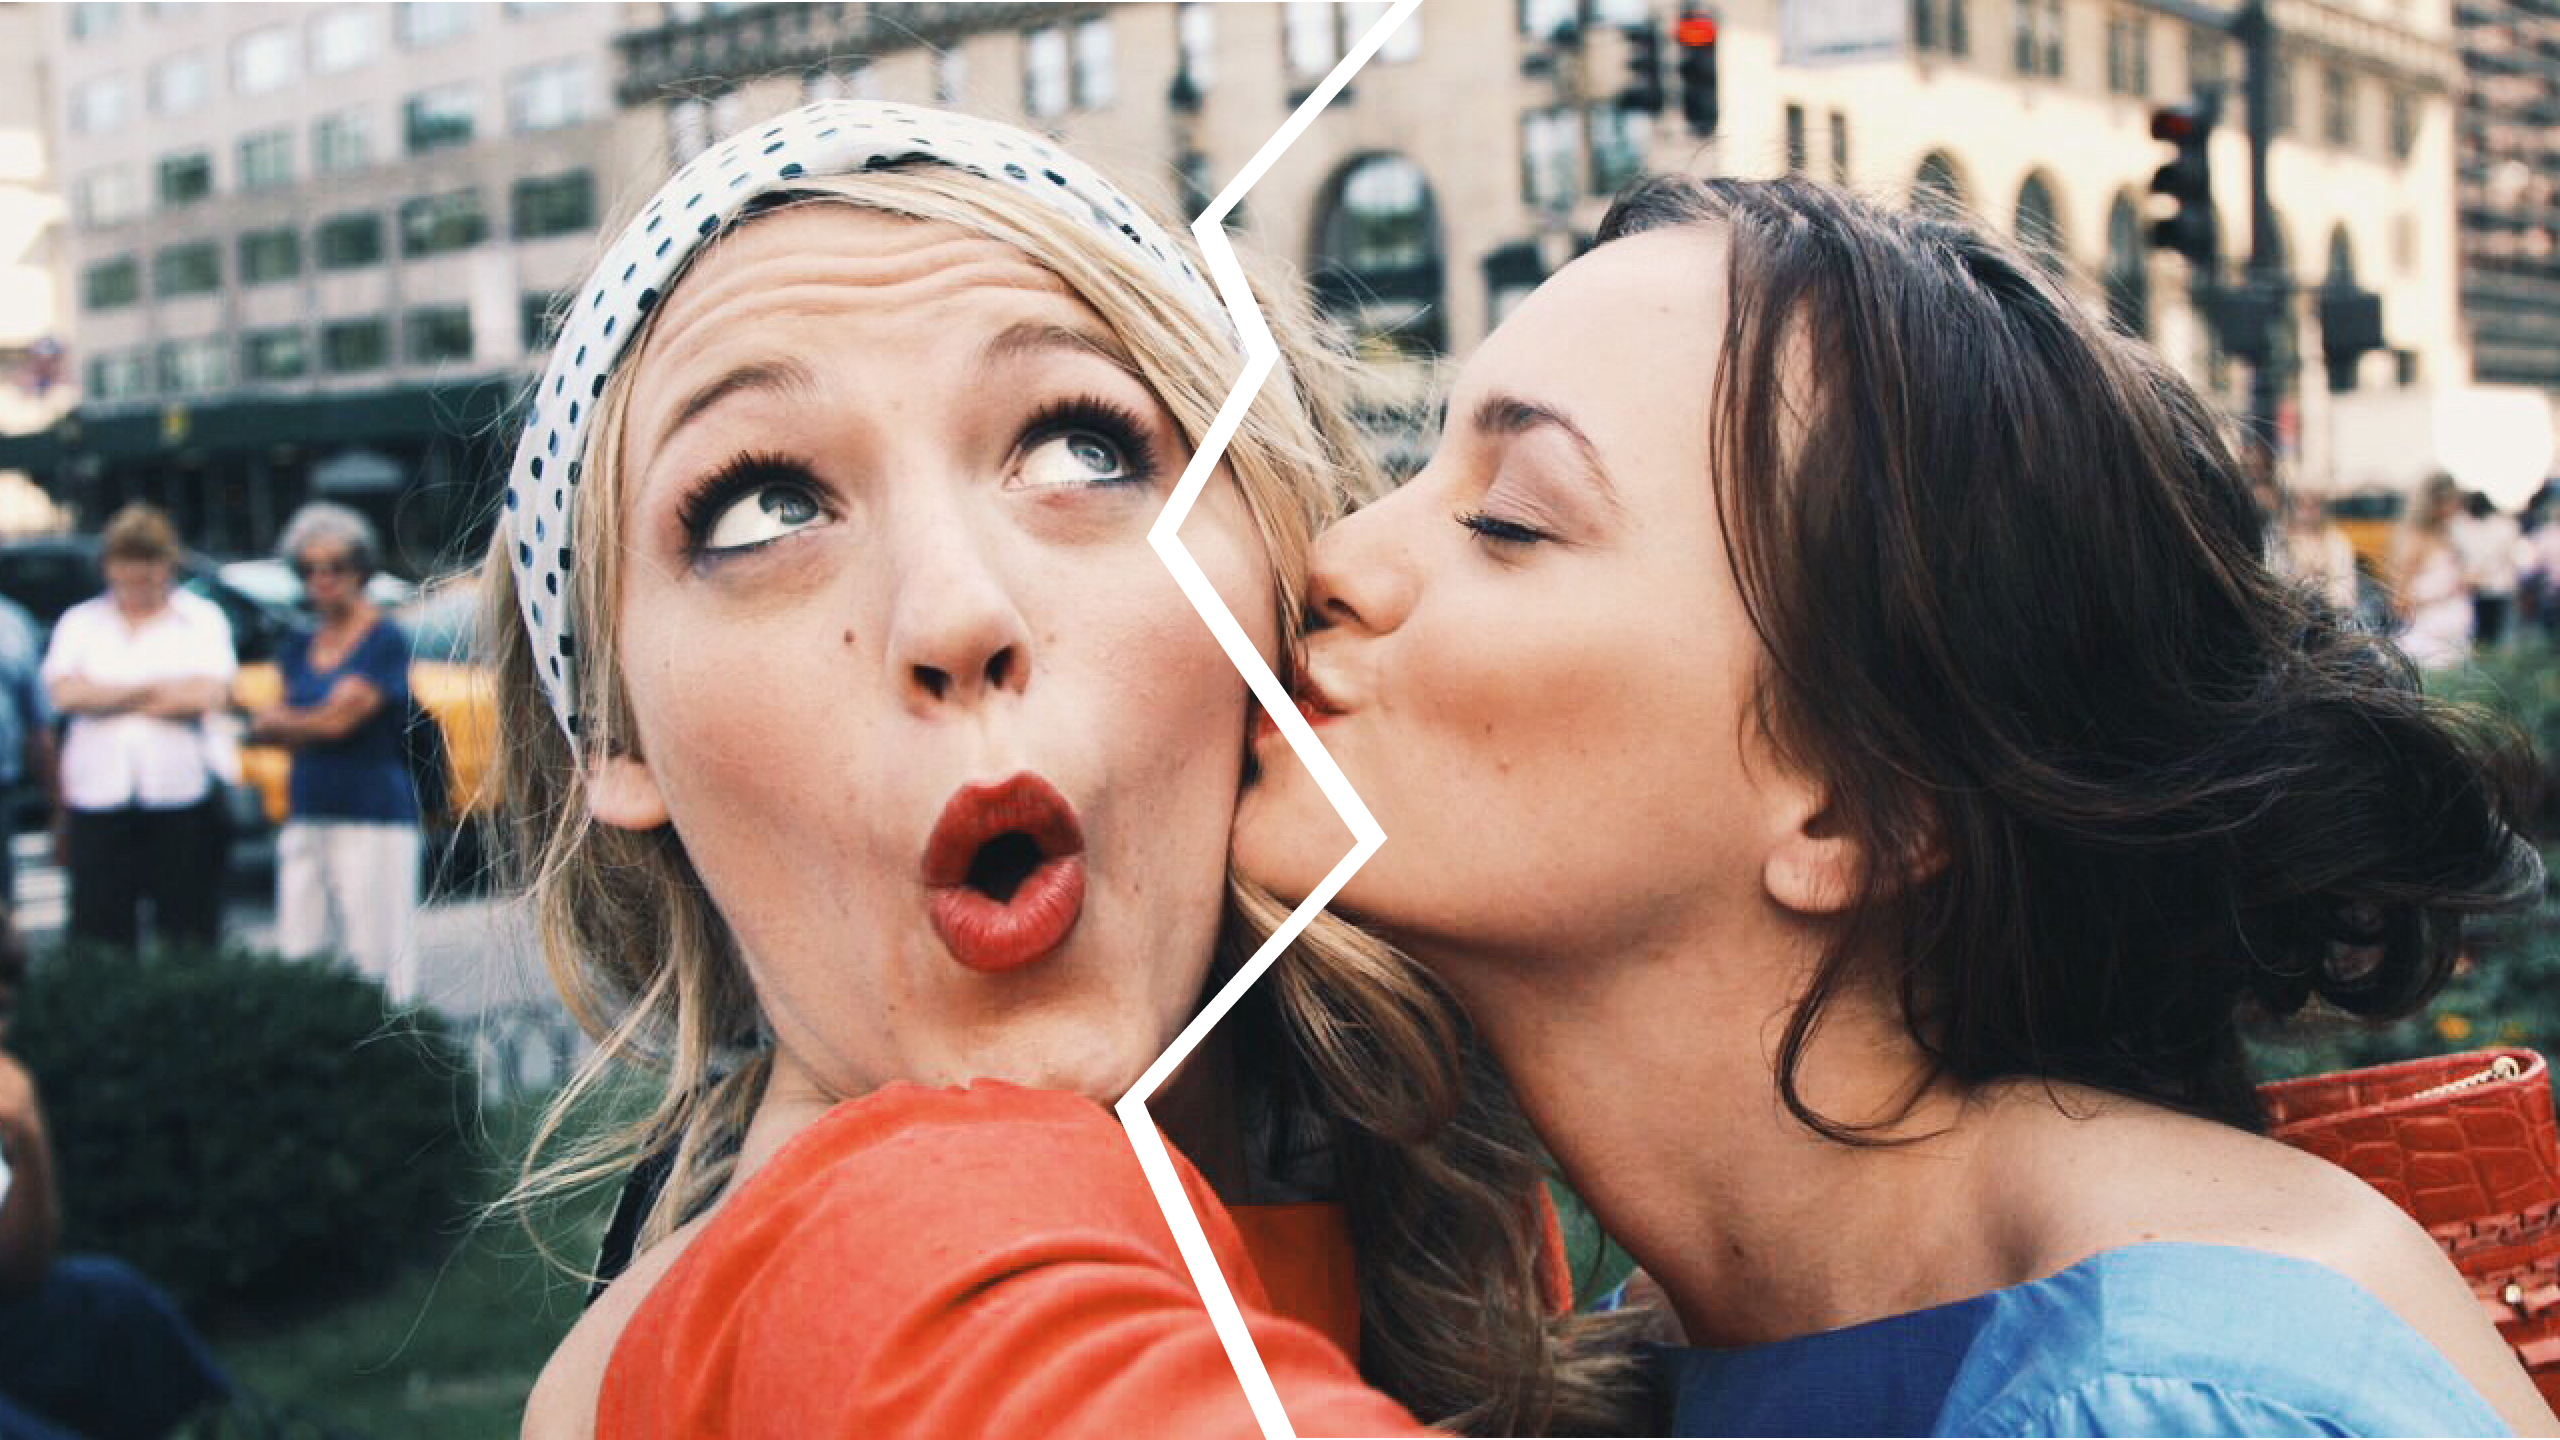 How to Break-up With Your BFF